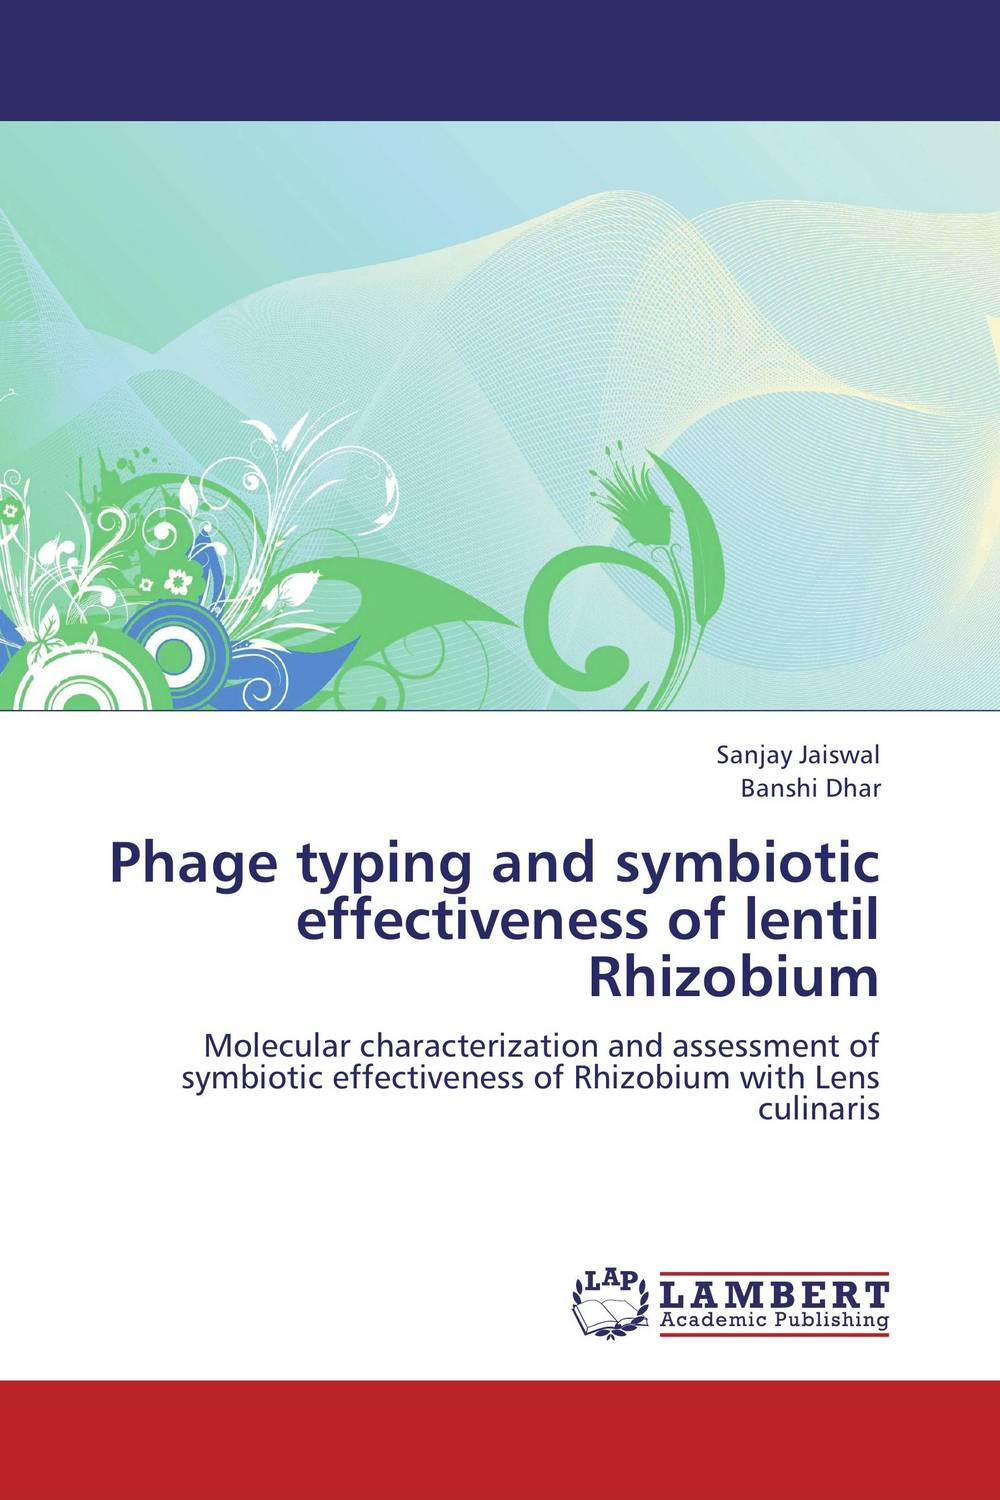 Phage typing and symbiotic effectiveness of lentil Rhizobium manisha sharma ajit varma and harsha kharkwal interaction of symbiotic fungus with fenugreek